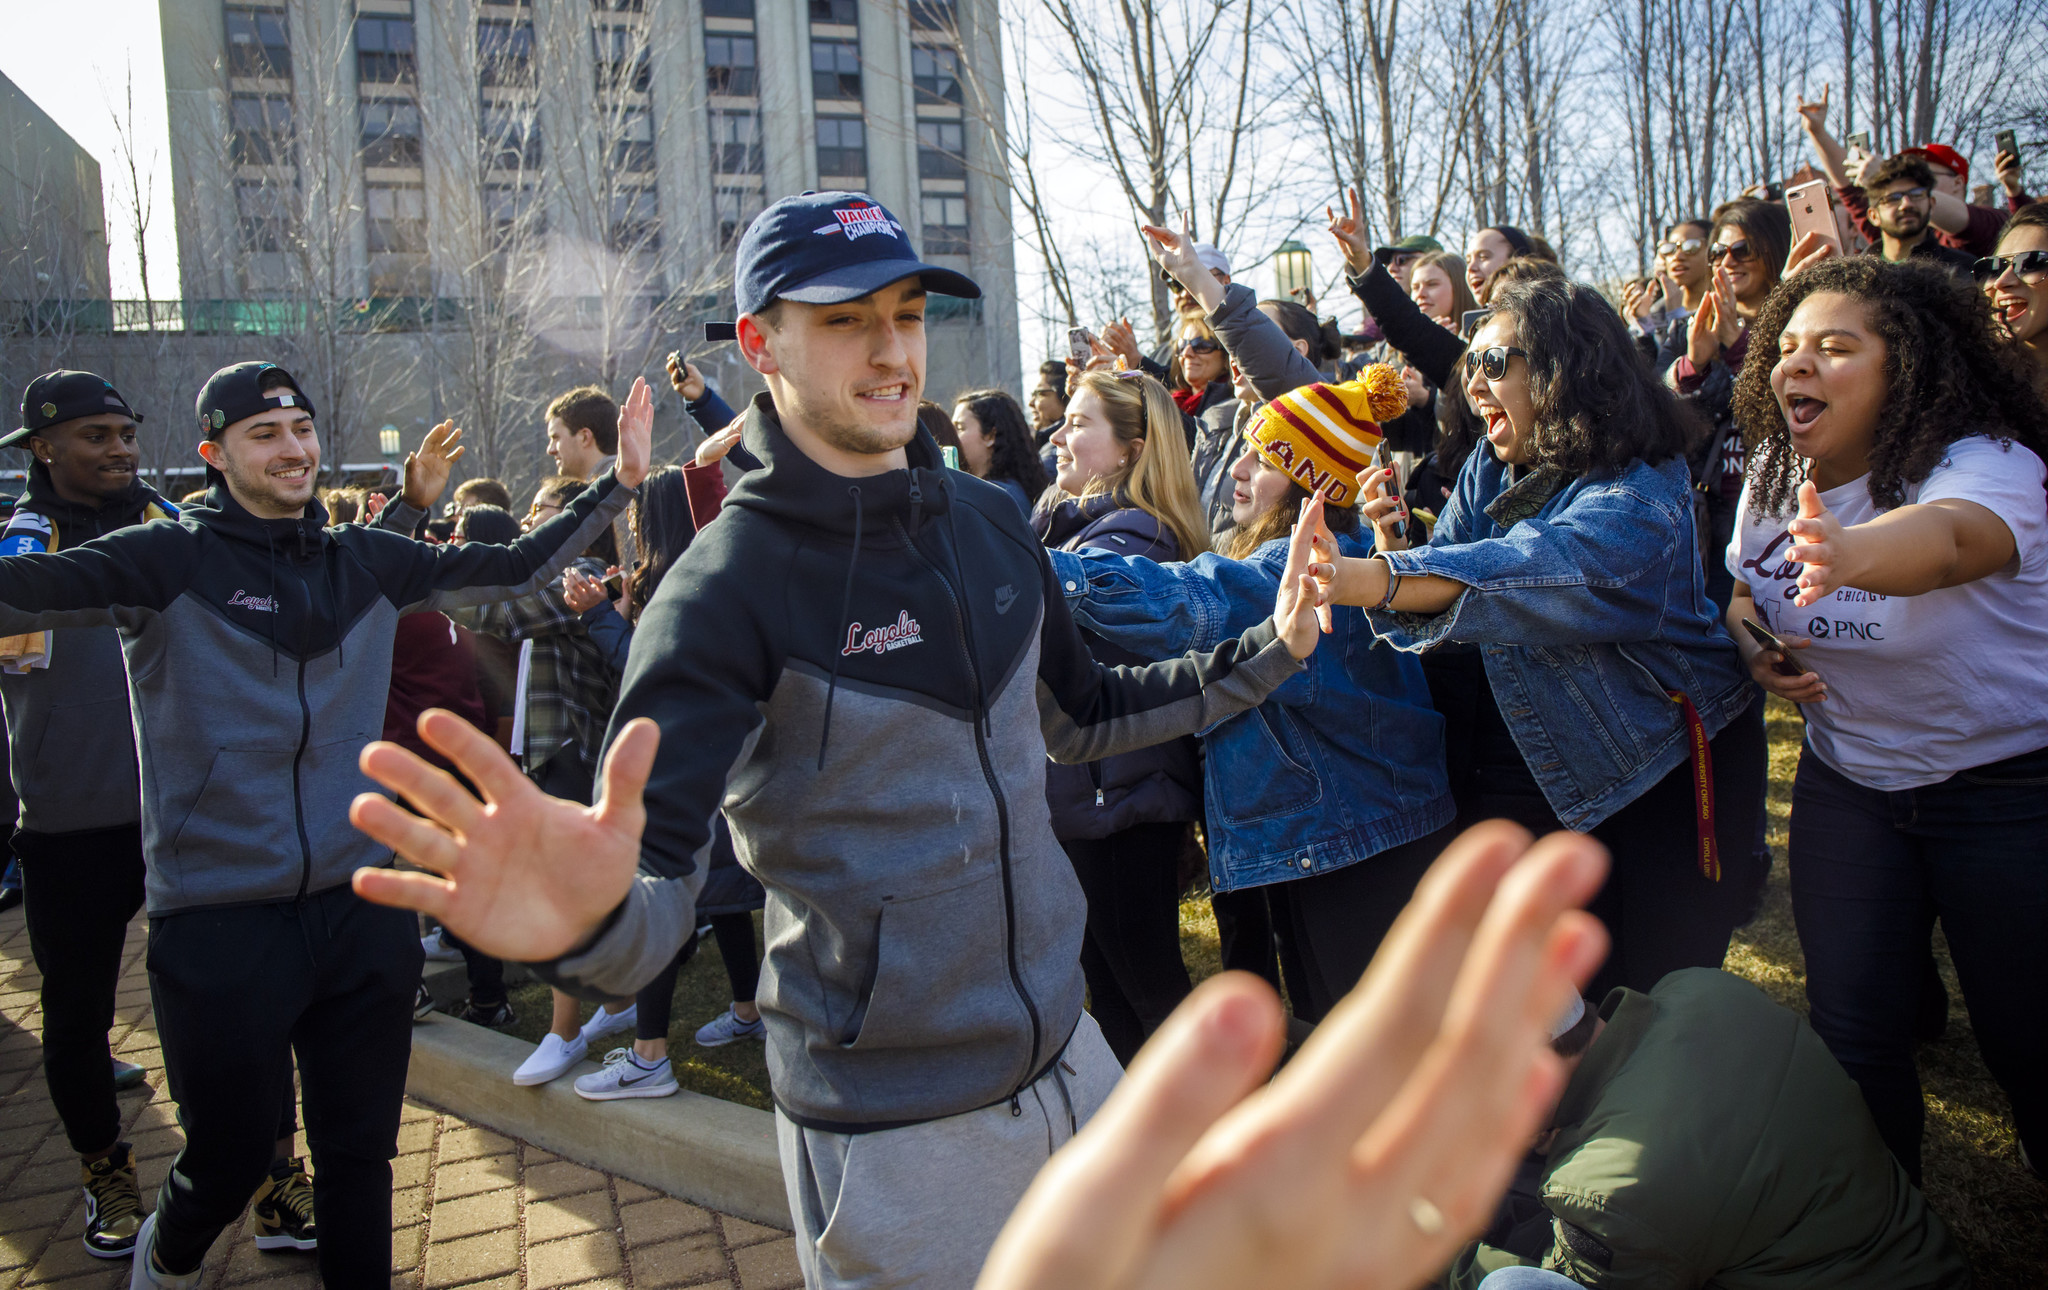 With NCAA success, Loyola now looks for gains off the court